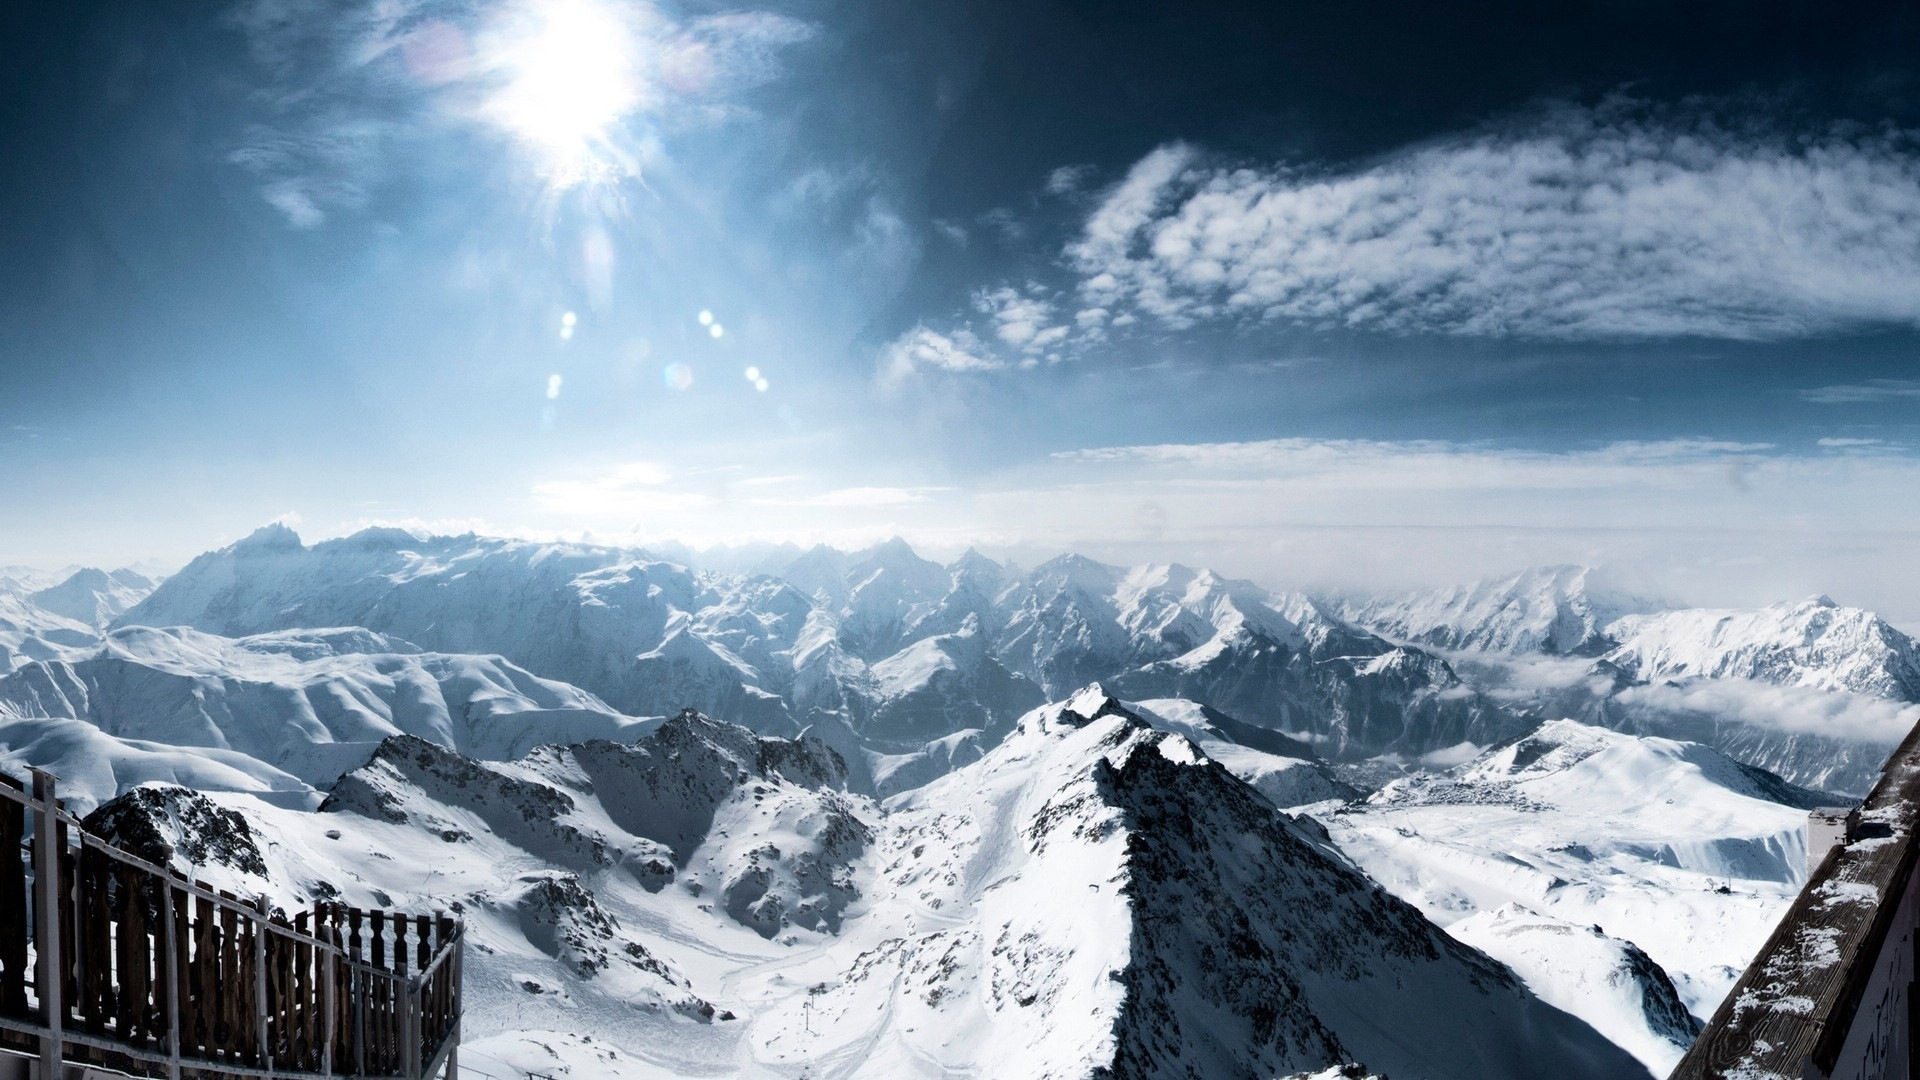 Winter Schnee Berge Seen Baume Strassen Hd Wallpaper 15